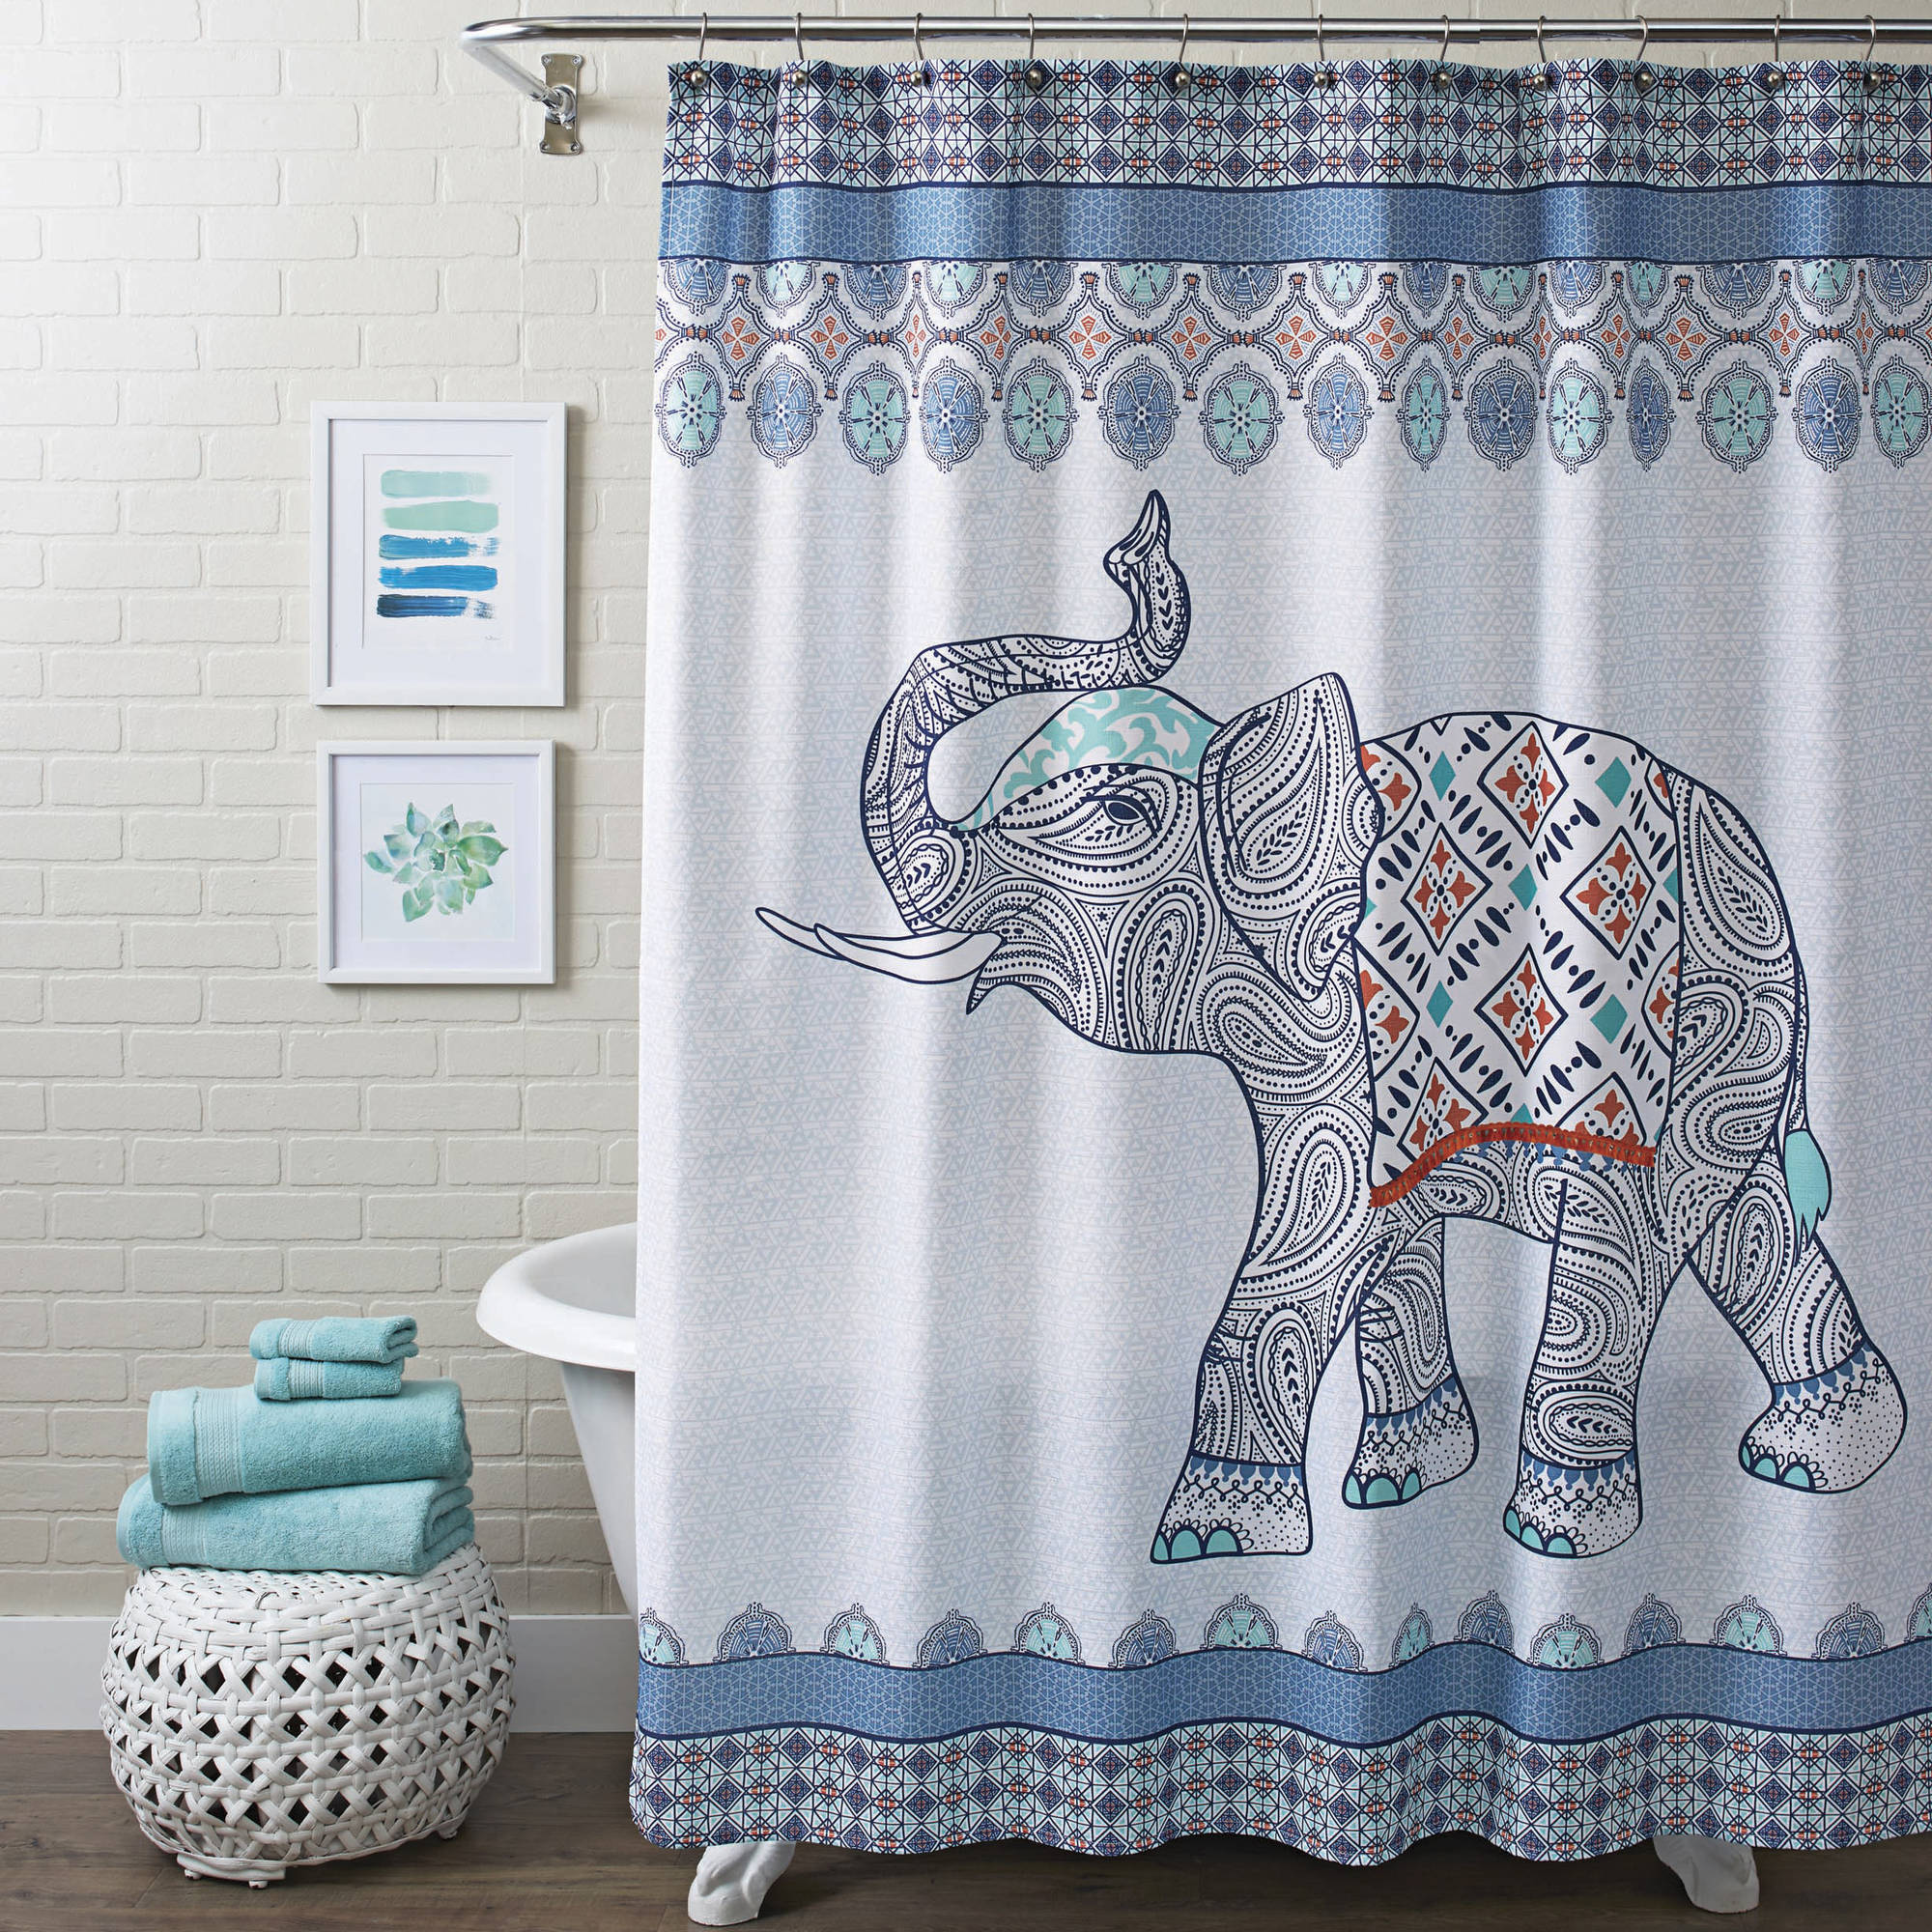 Bathroom curtains from walmart - Better Homes And Gardens Global Elephant Shower Curtain Multiple Colors